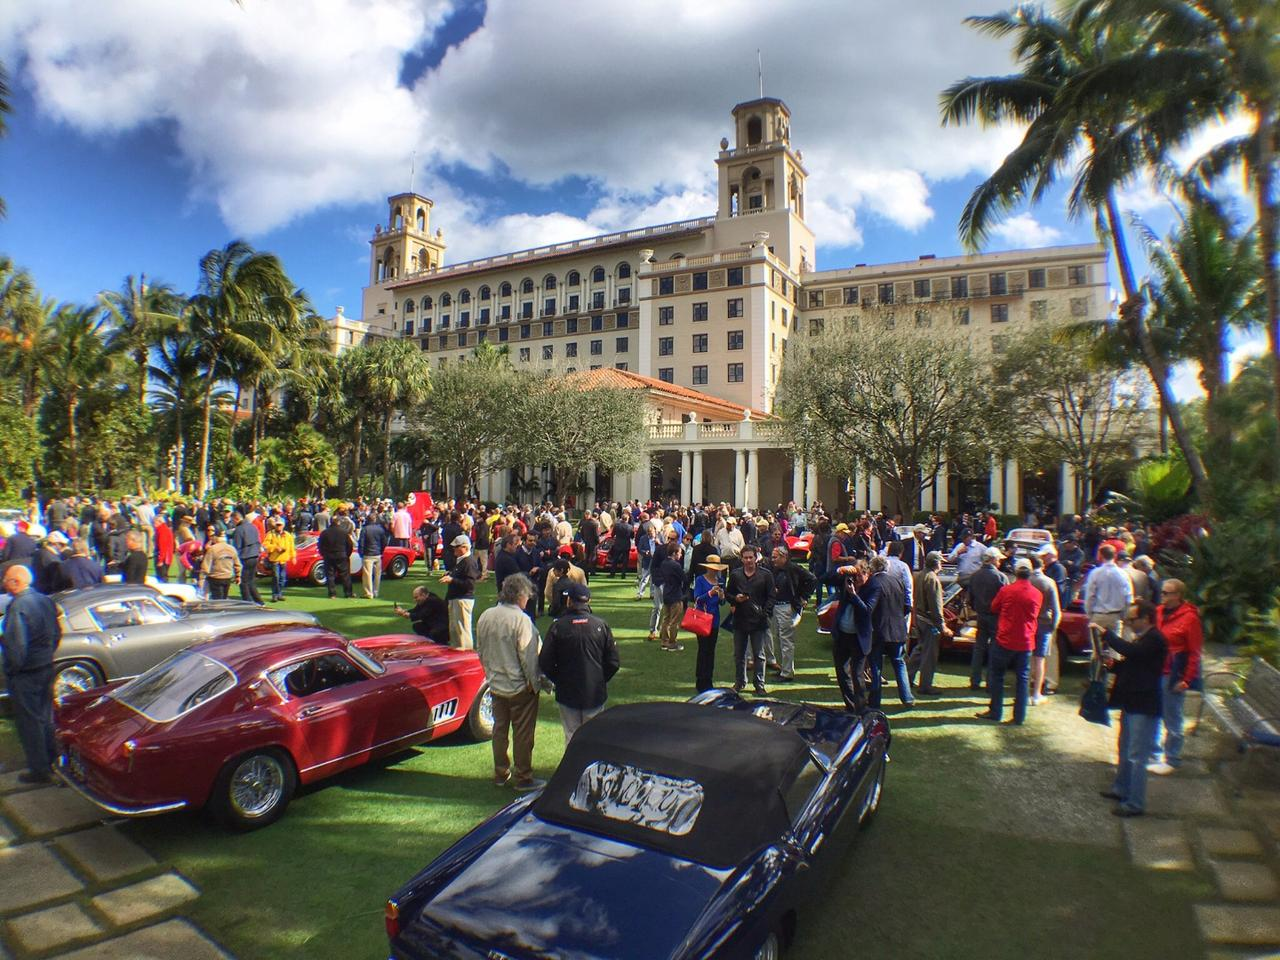 Held on the lawn at The Breakers Palm Beach, the Cavallino Classic's Concours d'Eleganza is just that, truly elegant